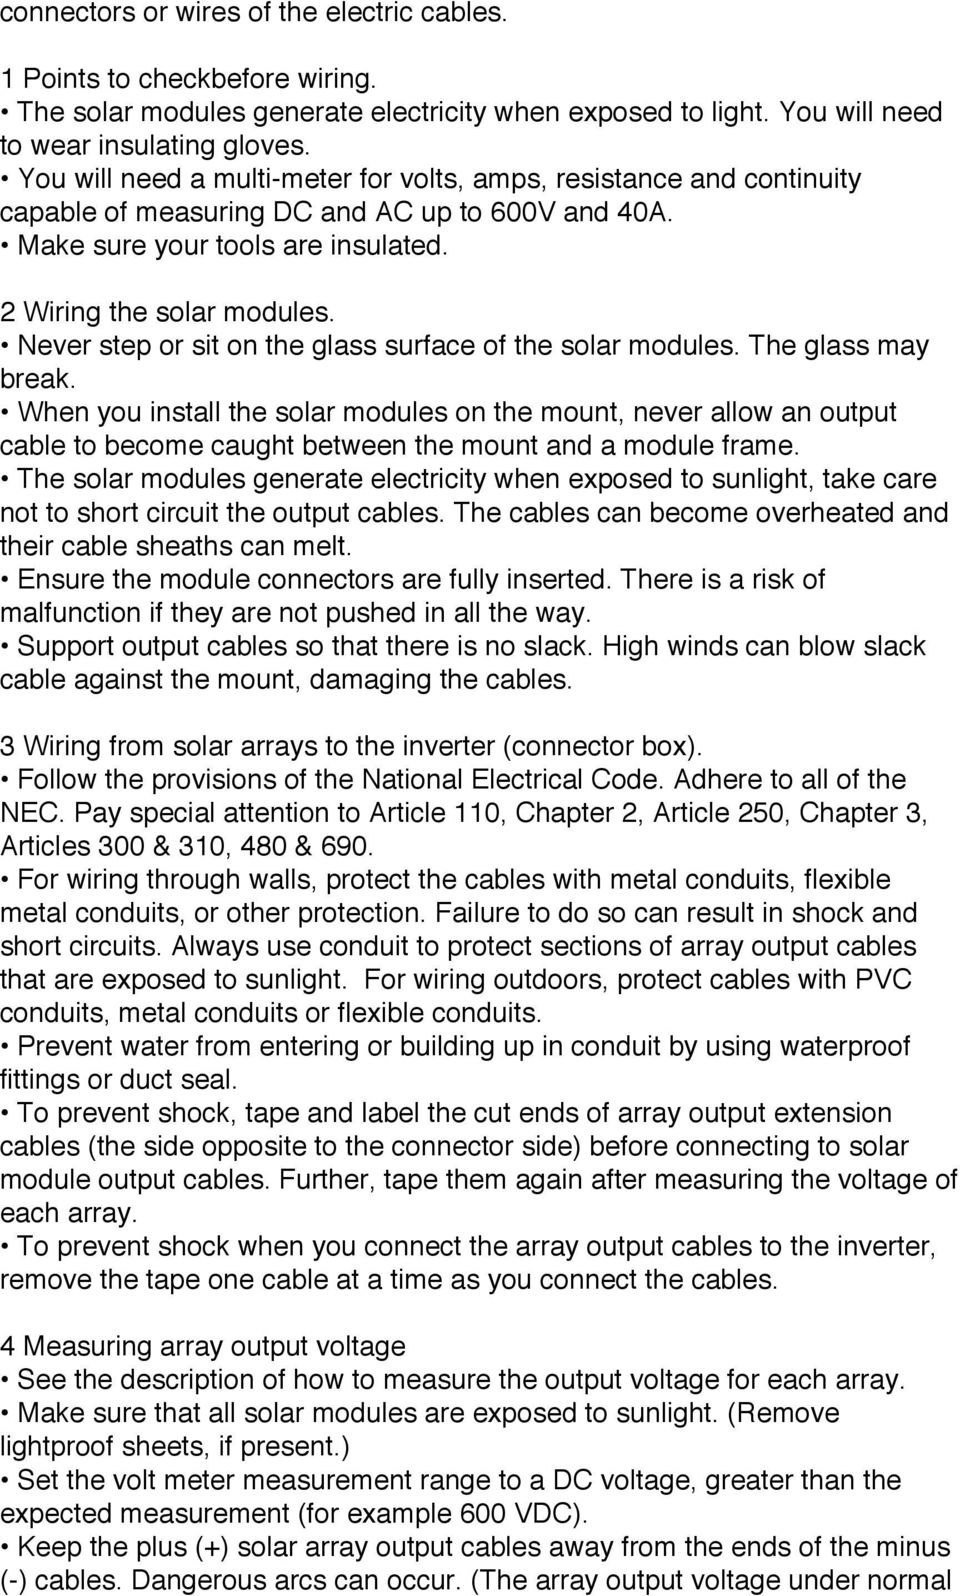 Never step or sit on the glass surface of the solar modules. The glass may break.